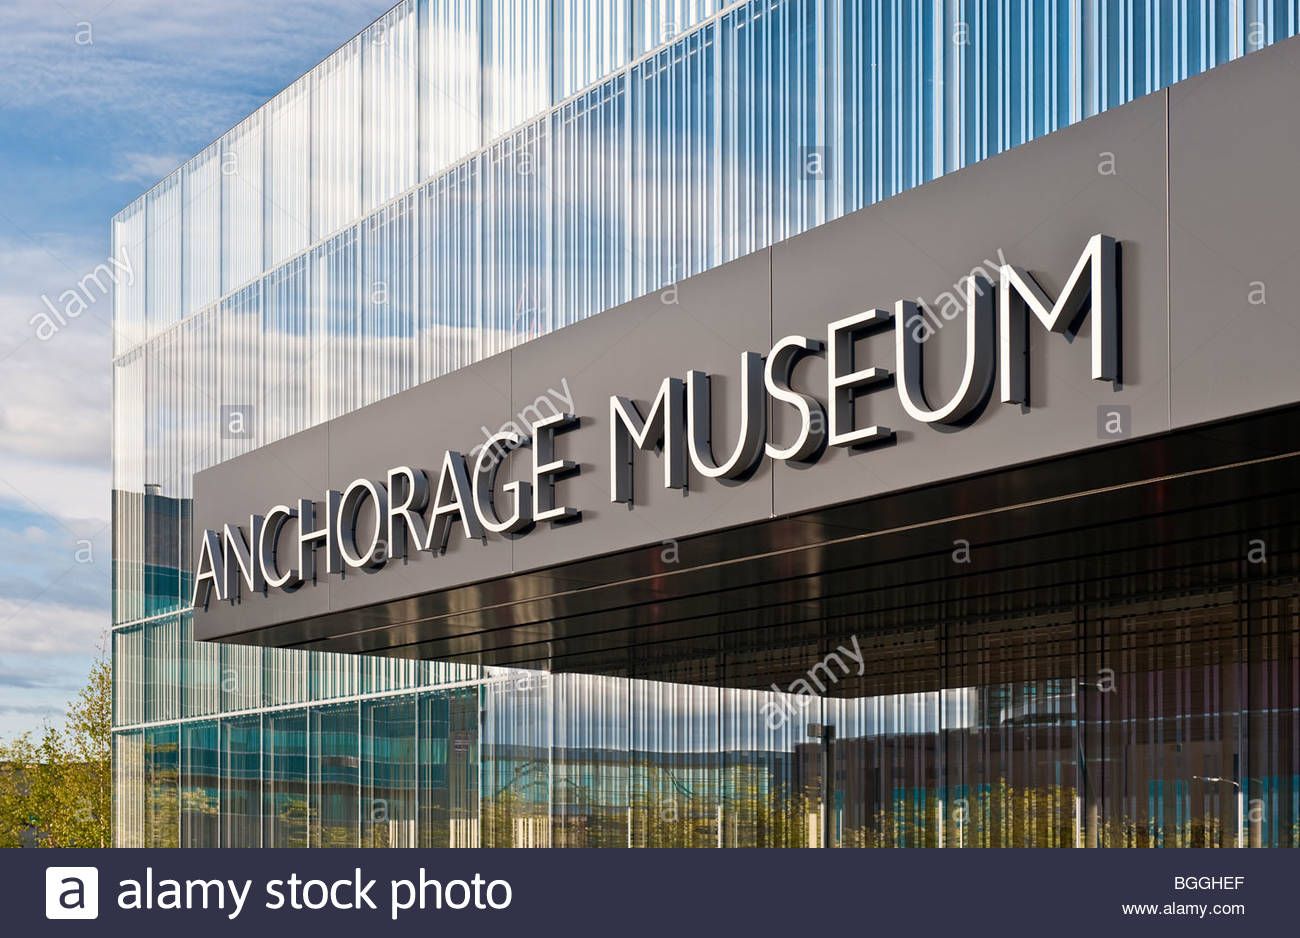 Alaska, Anchorage. The new Anchorage Museum expansion. - Stock Image